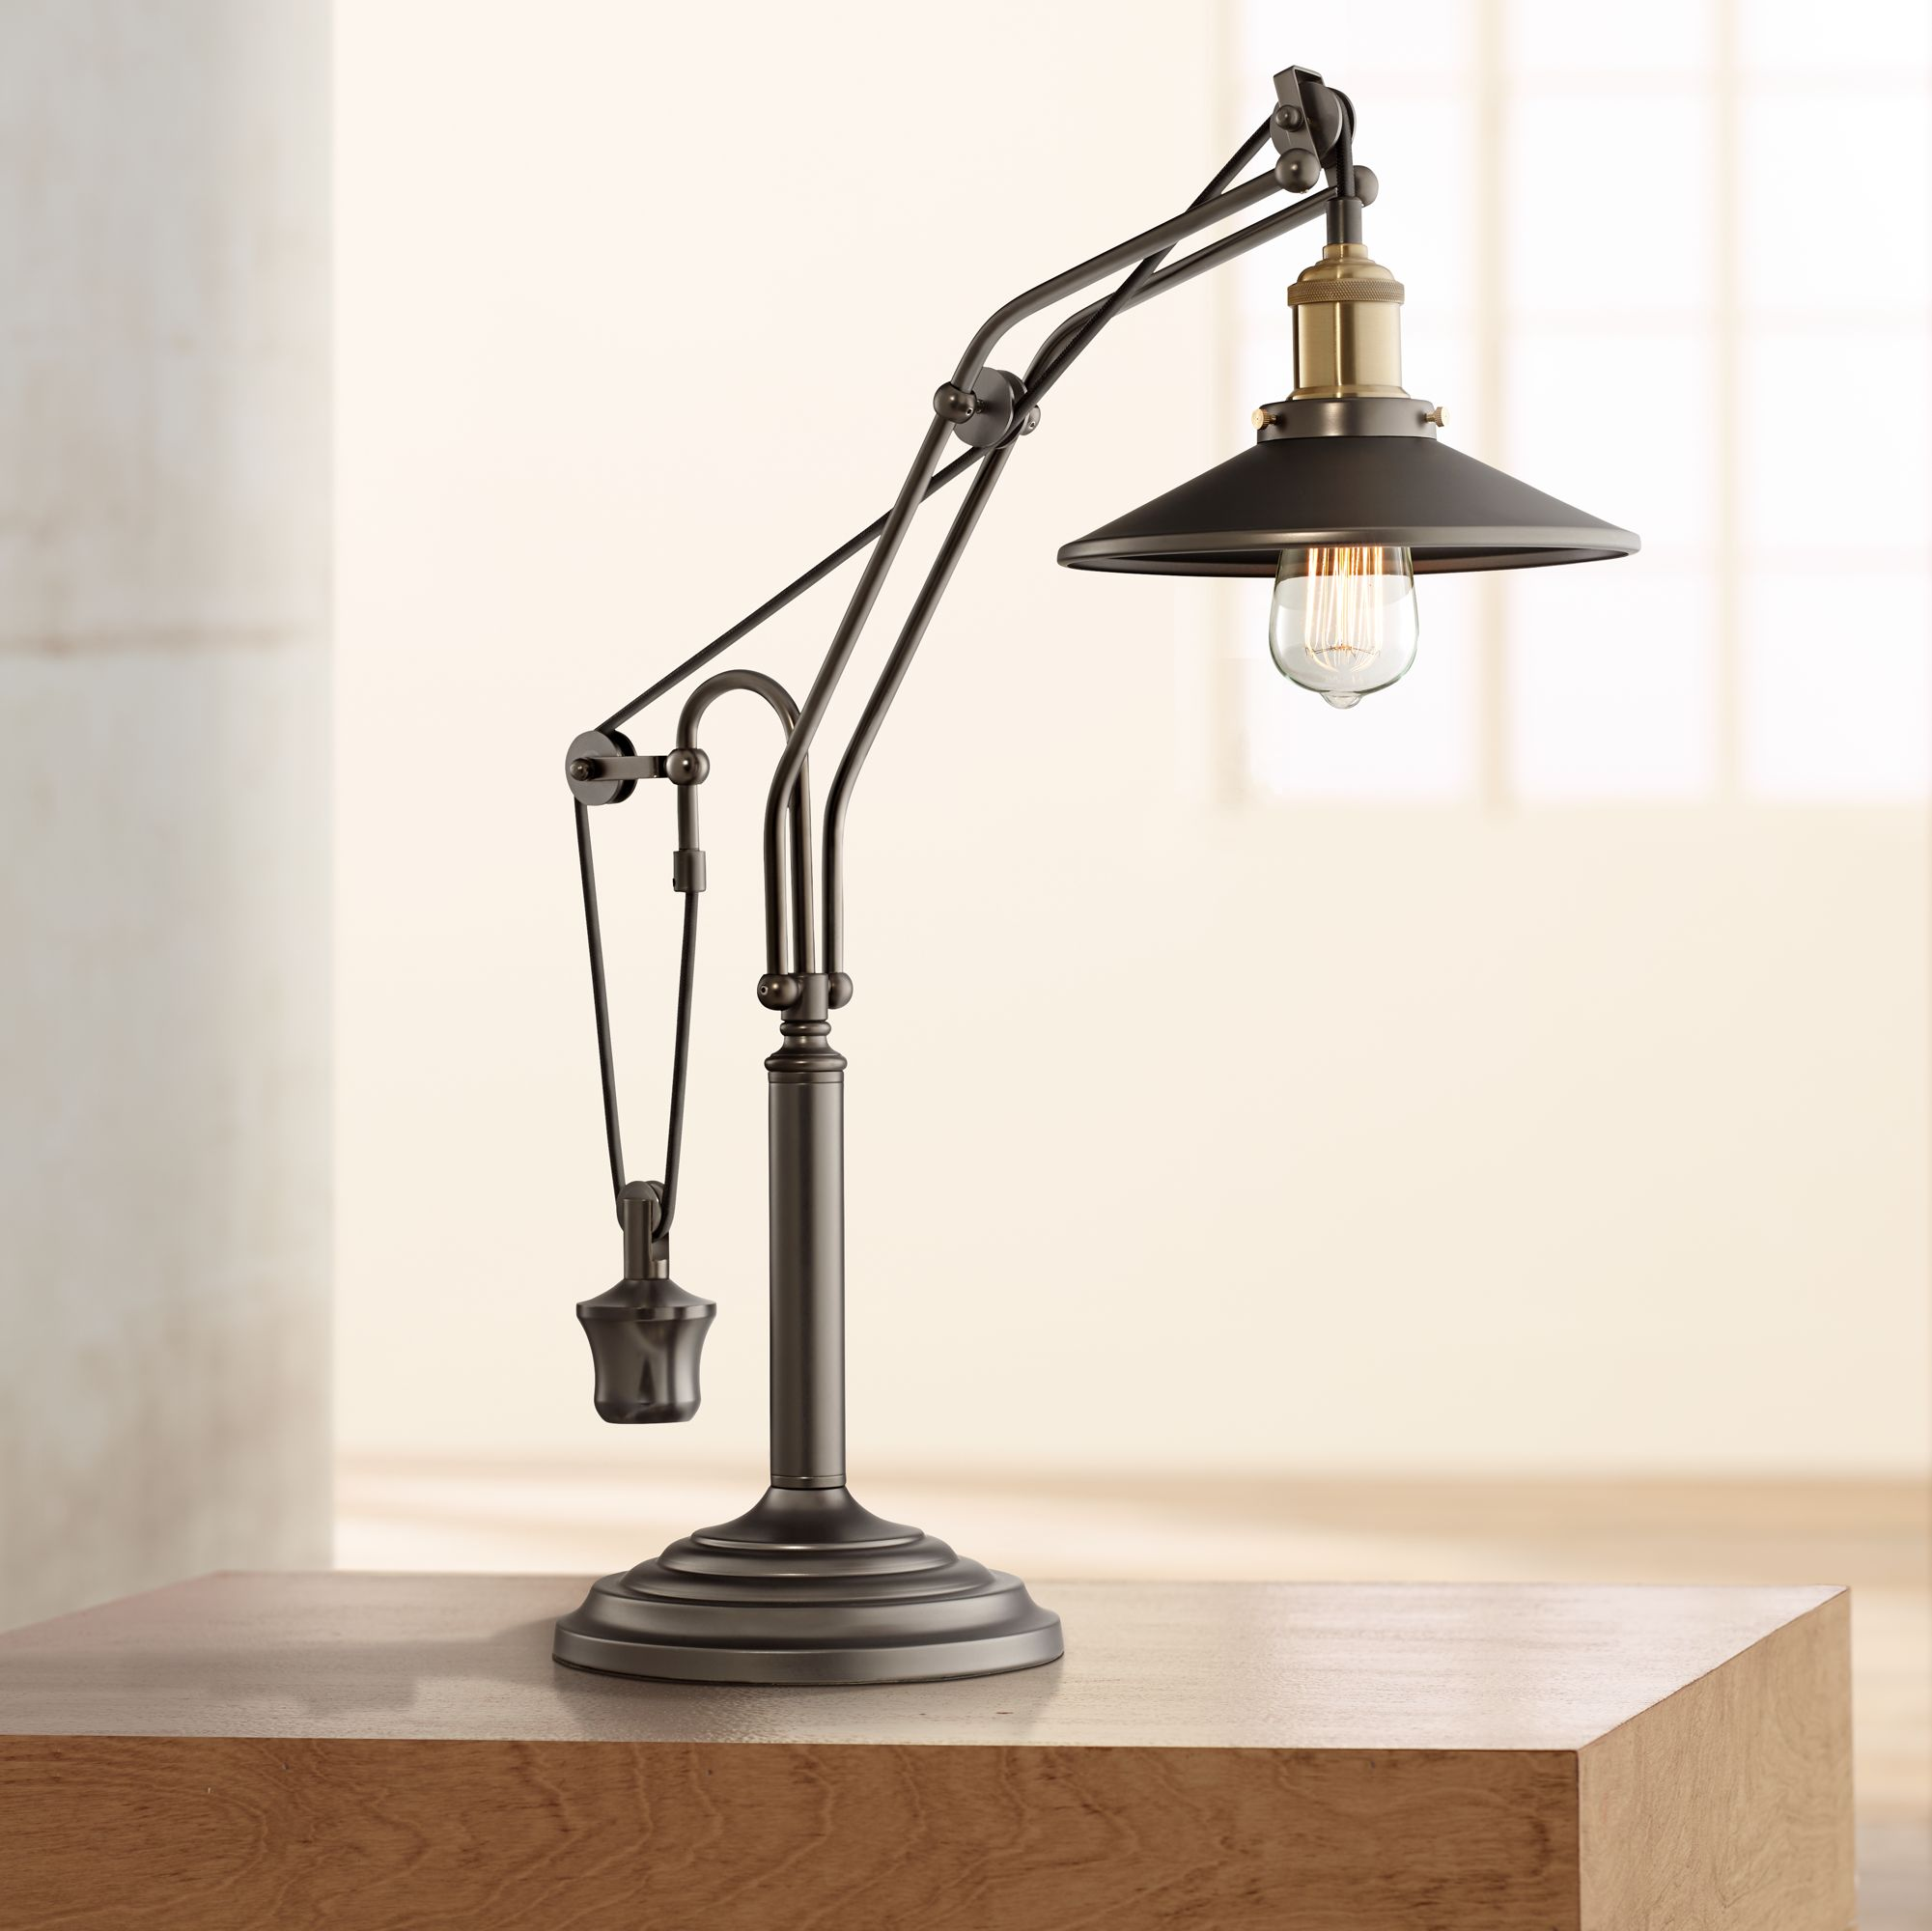 Emile Oiled Rubbed Bronze Industrial Desk Lamp